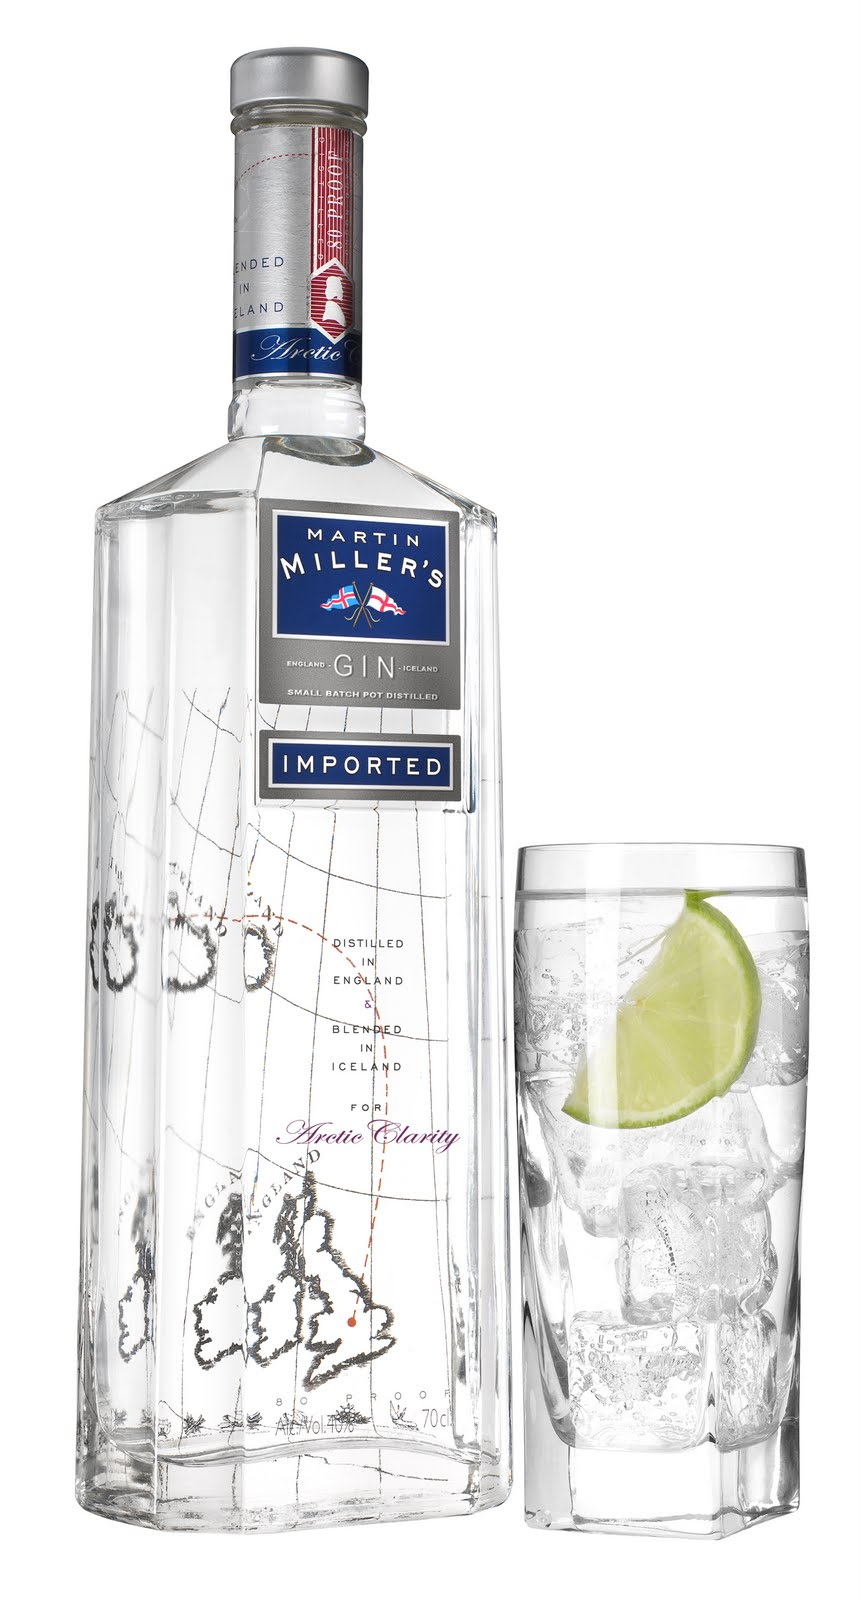 heindricks and martin millers gin Browse our large selection of gin, covering everything from the popular to unusual brands we have everything for the gin lover.